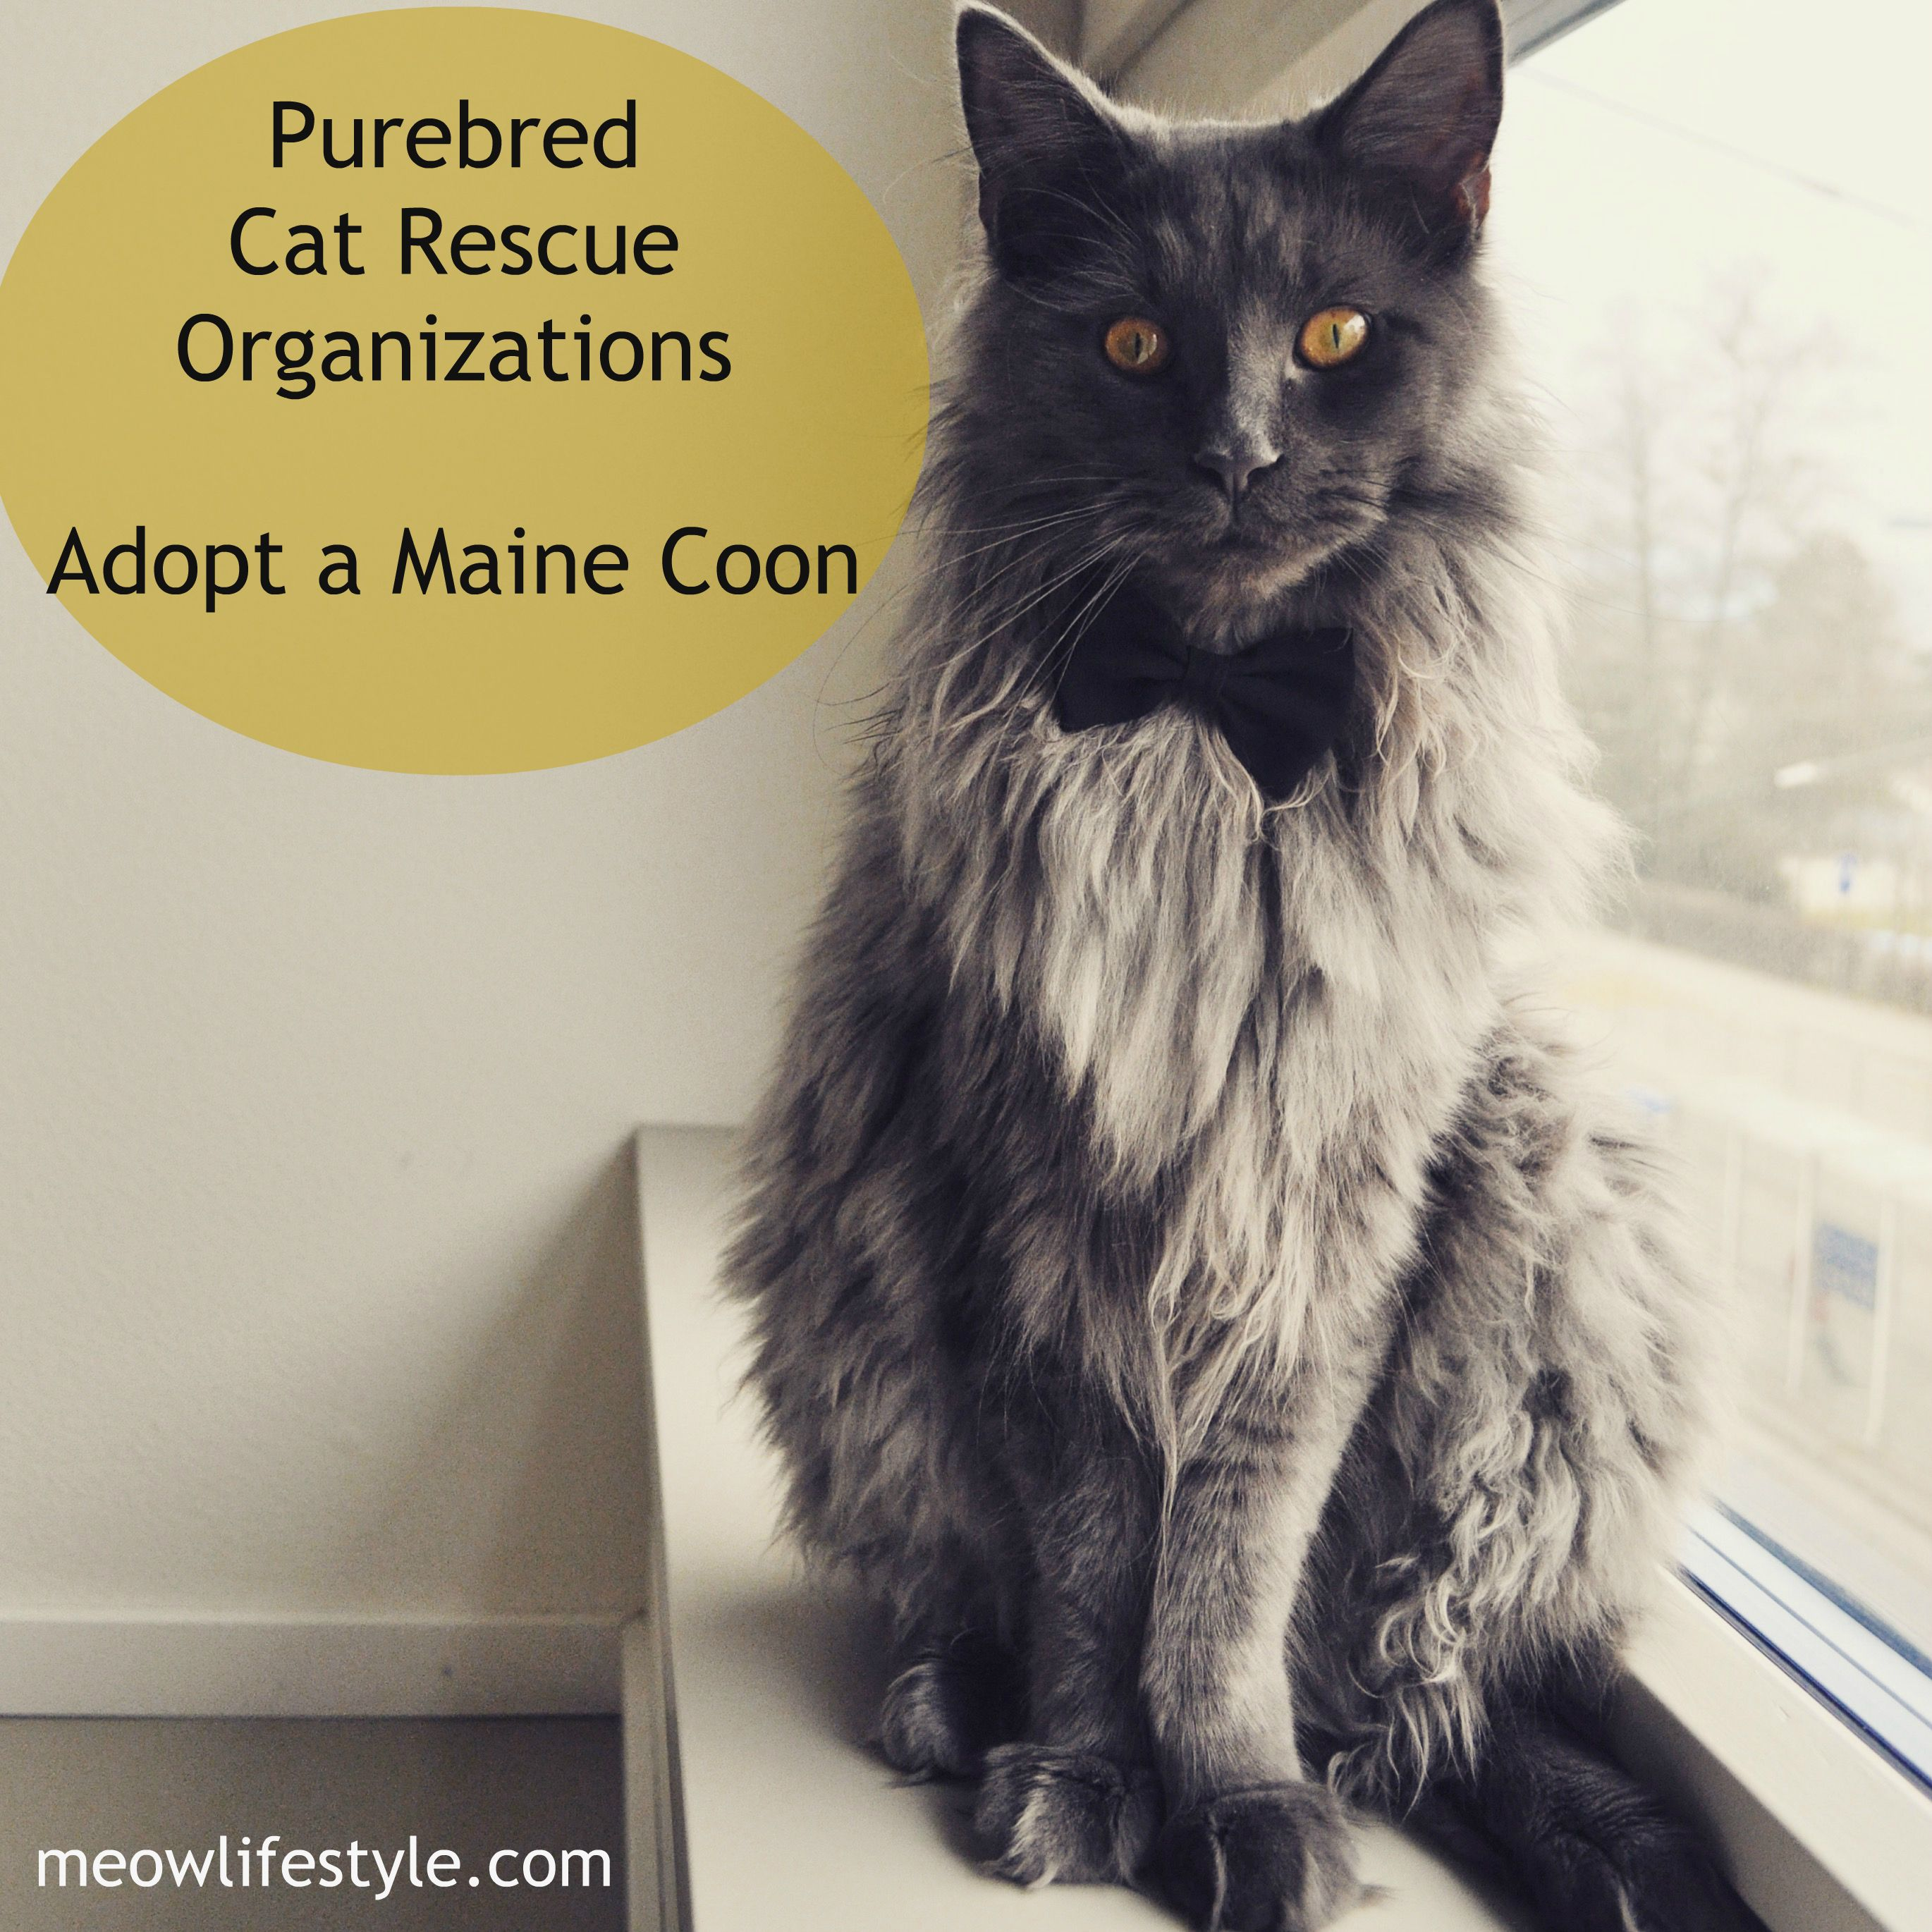 Purebred Cat Rescue And Adoption Meow Lifestyle Purebred Cats Cat Rescue Bengal Cat Rescue